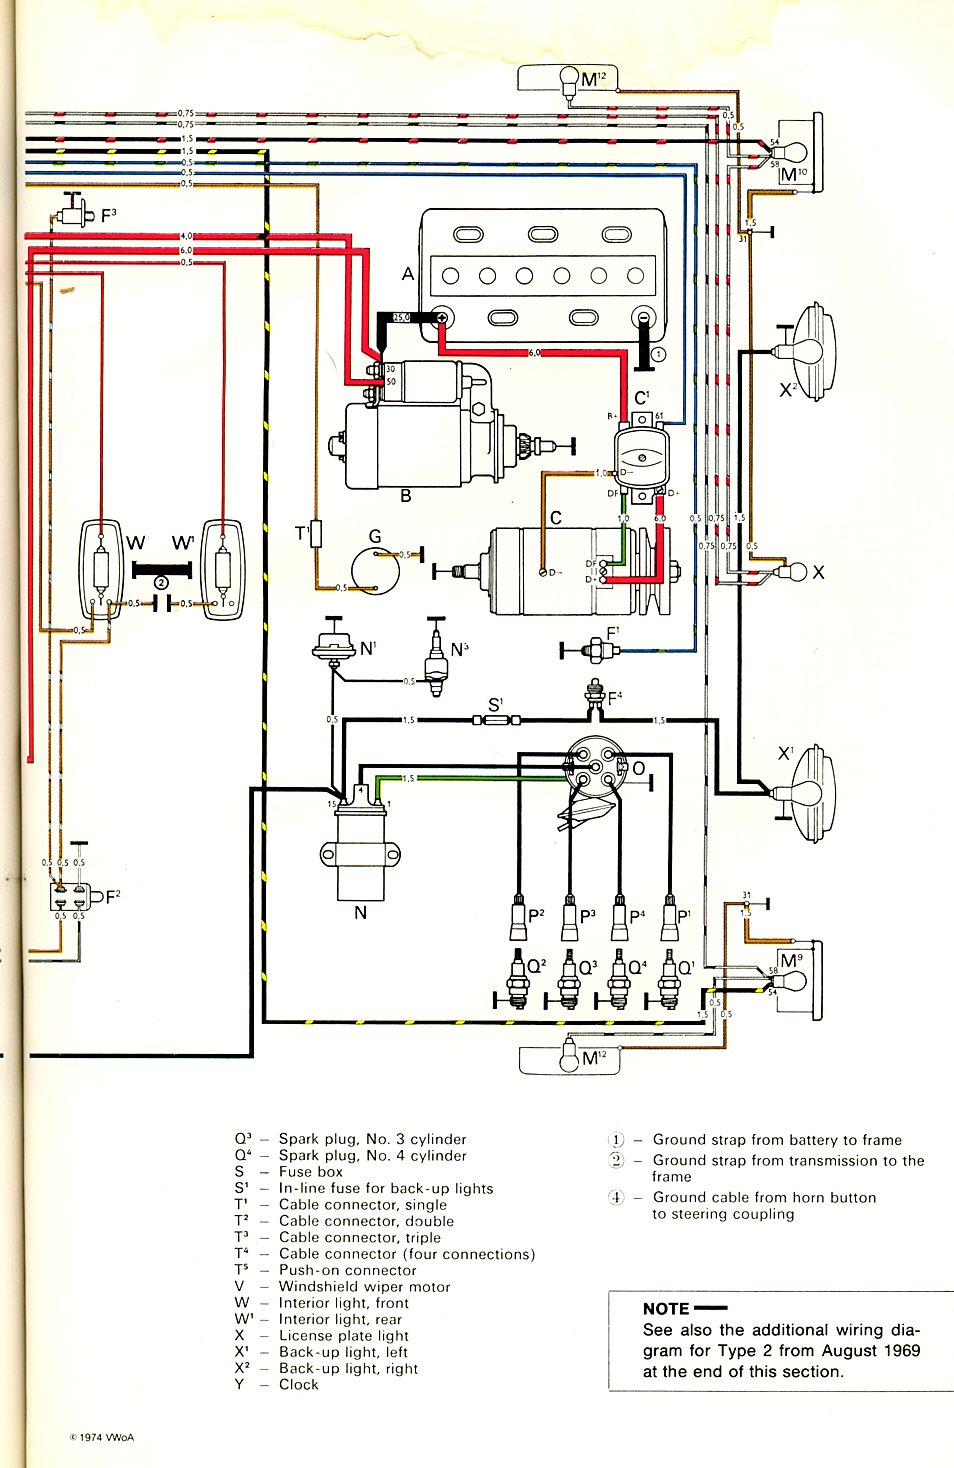 baybus_70b thesamba com type 2 wiring diagrams 1972 beetle wiring diagram at bayanpartner.co